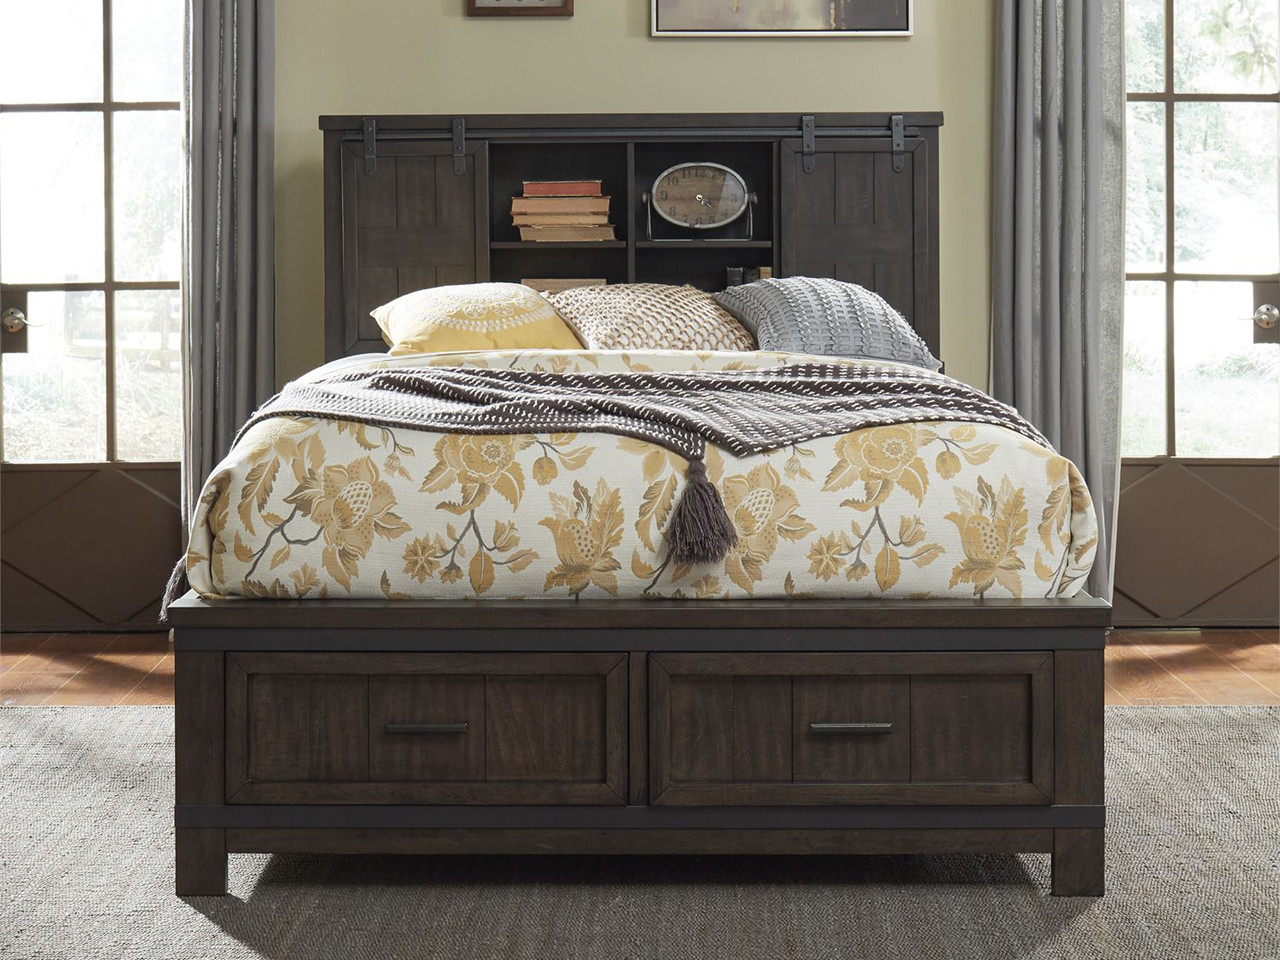 Picture of: Farmhouse Bookcase Storage Bed Queen Bedroom Source